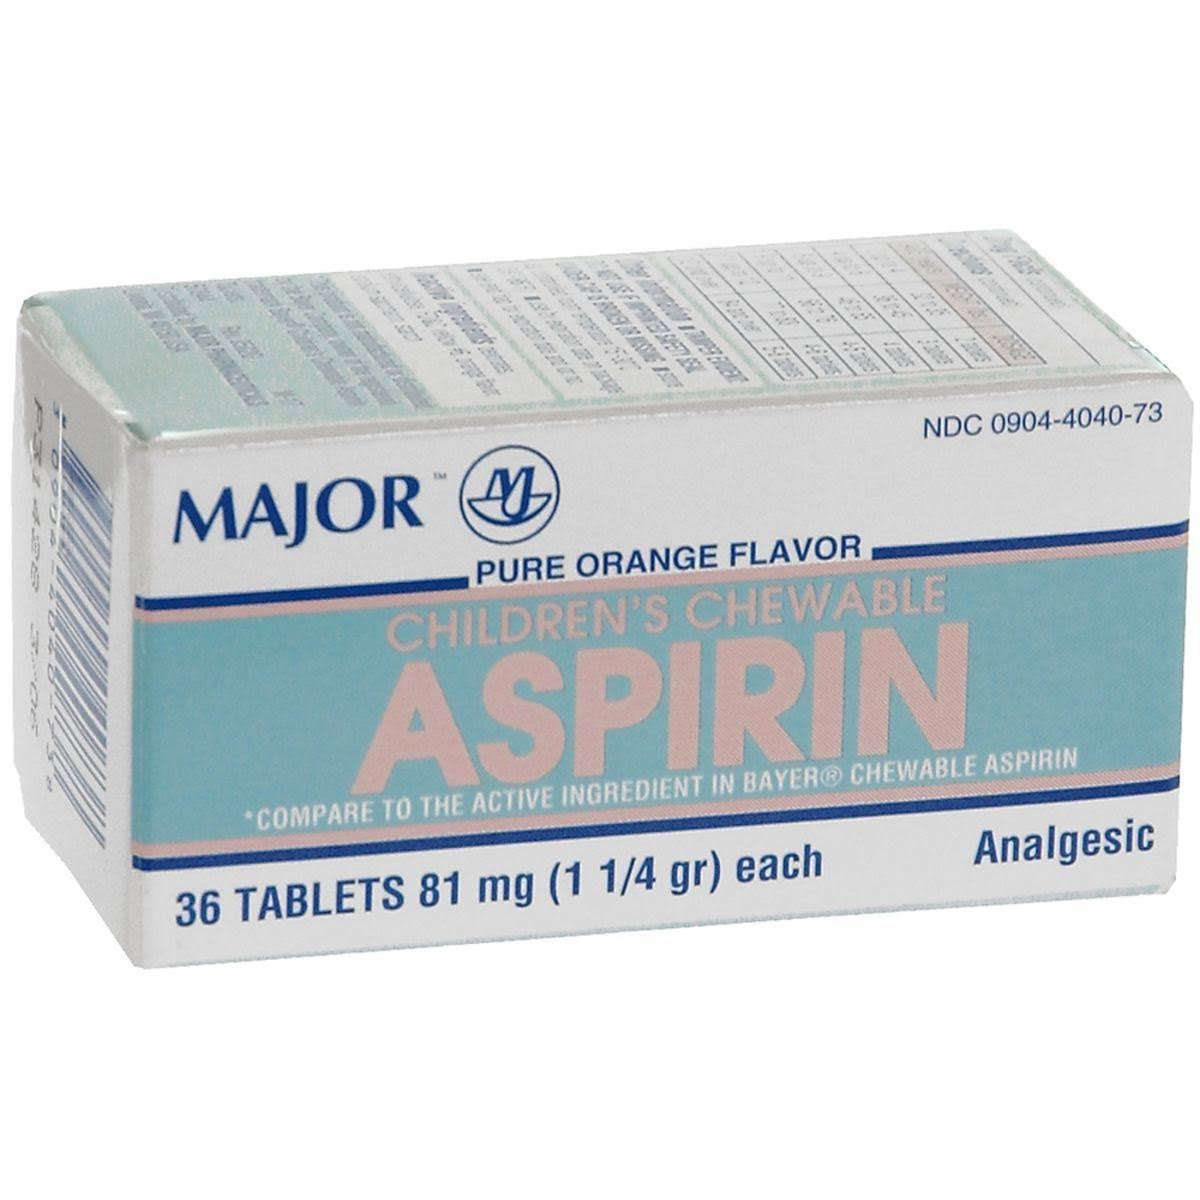 Major Children's Chewable Aspirin Tablets - Orange, 36 Tablets